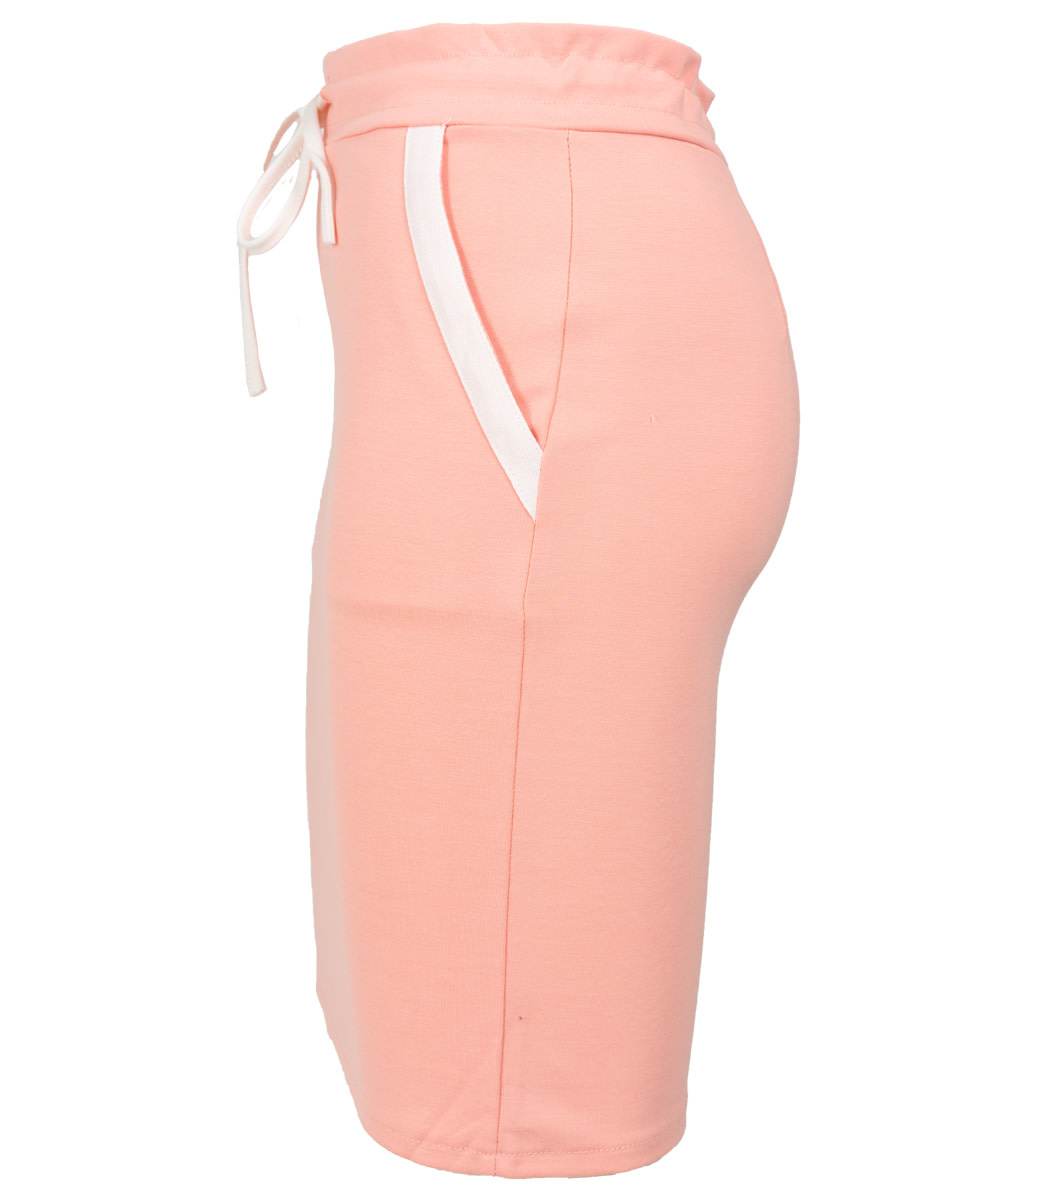 Rebelz Collection Rok zalm/wit Mandy